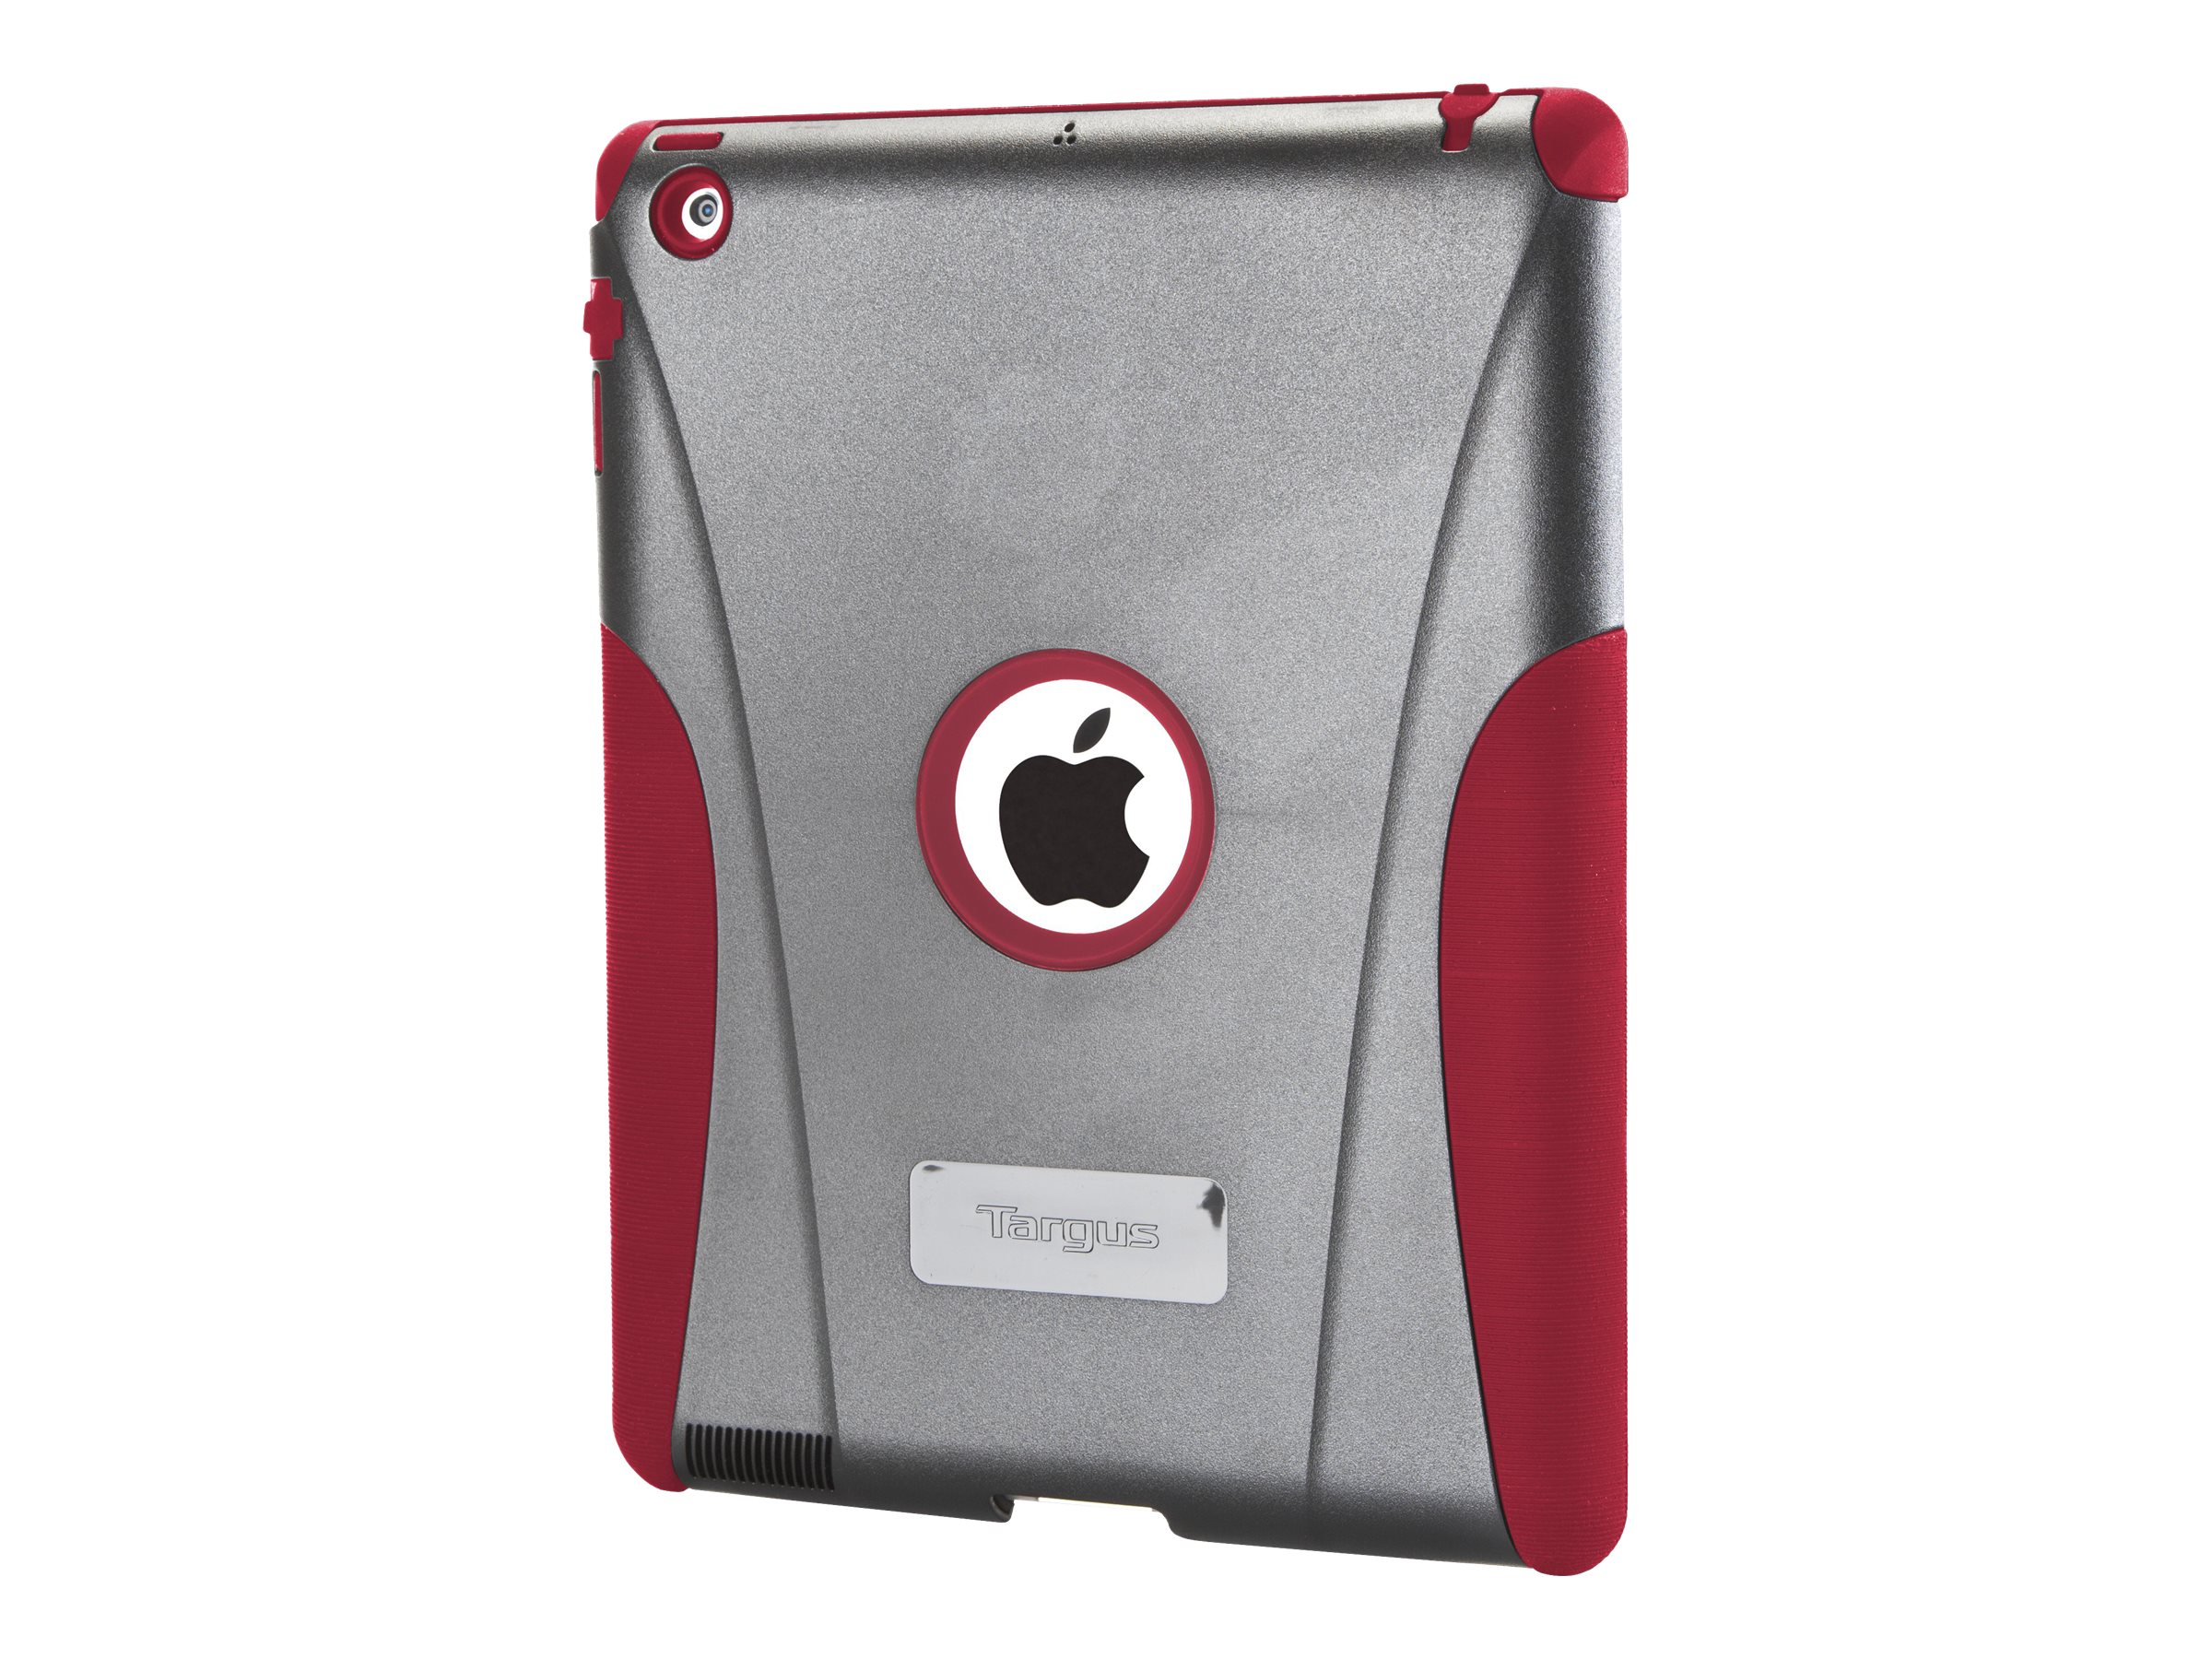 Targus Rugged Safeport Case for iPad 3 4, Red, THD04503US